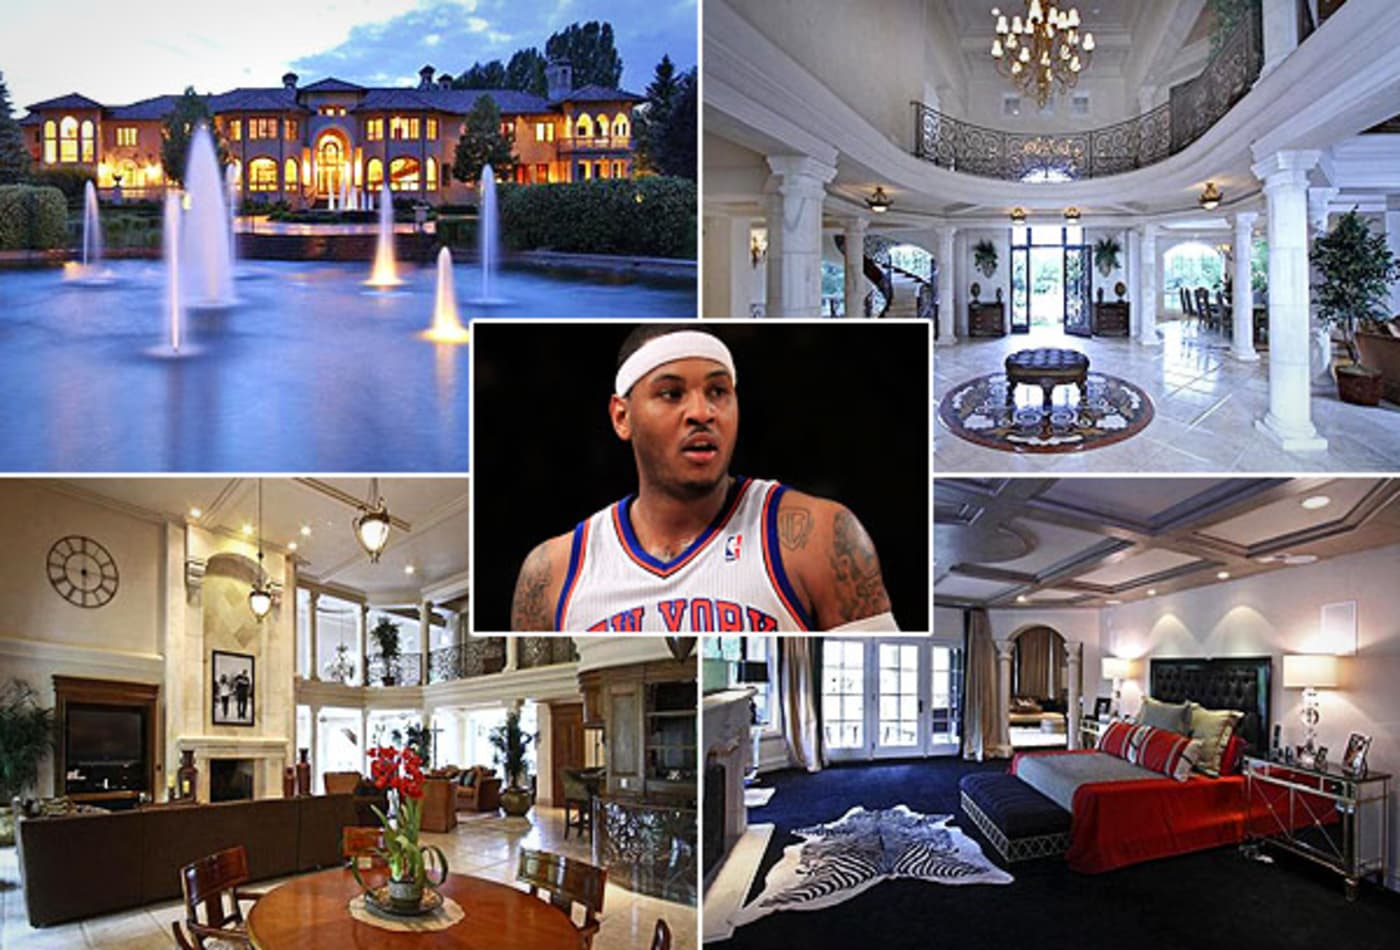 Carmelo-Anthony-Homes-of-NBA-Stars-CNBC.jpg